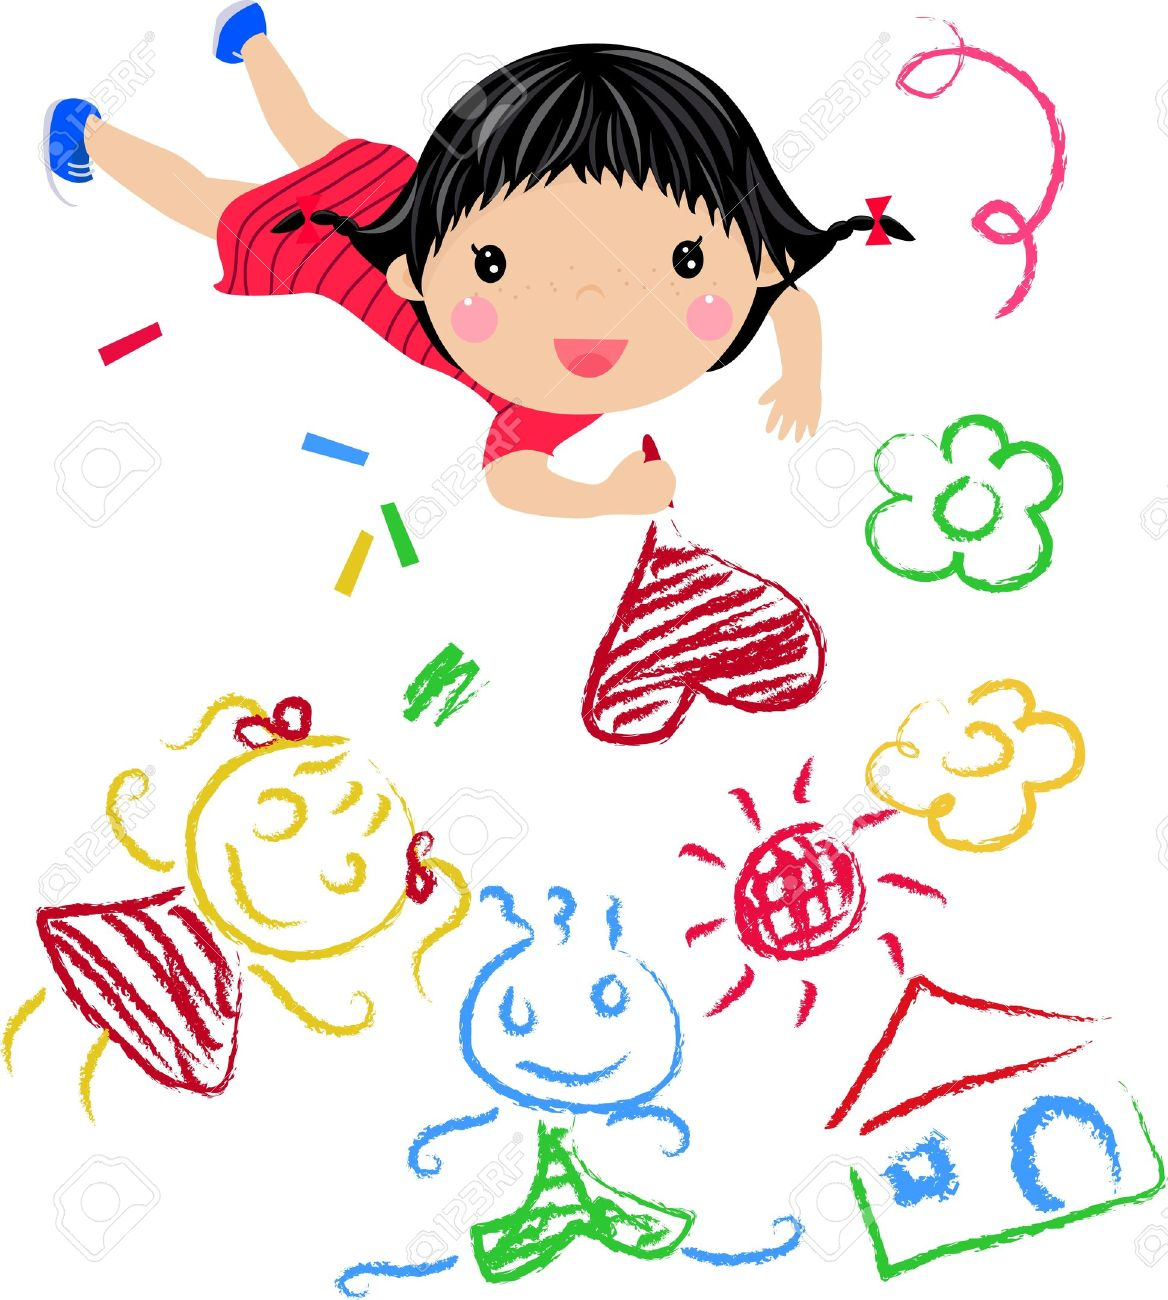 Kids Drawing Stock Photos Royalty Free Kids Drawing Images And